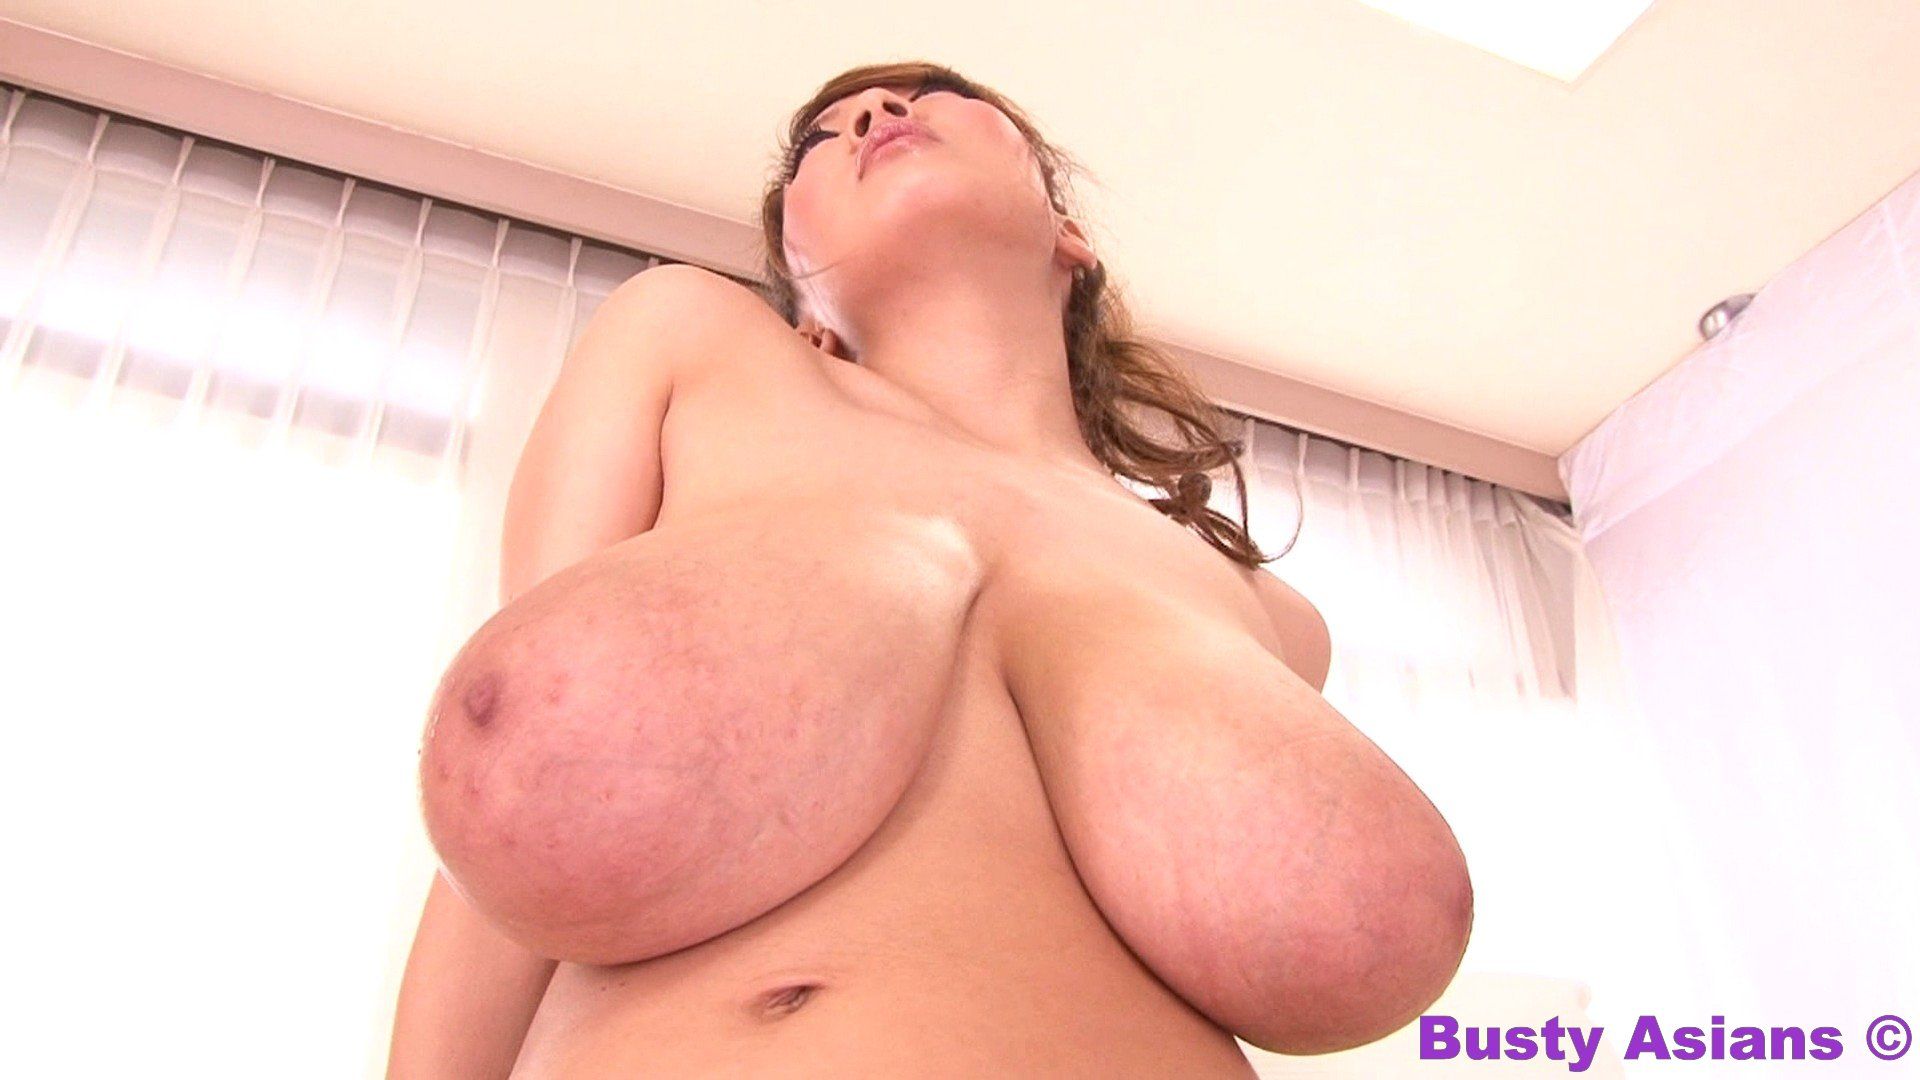 busty asians fuko